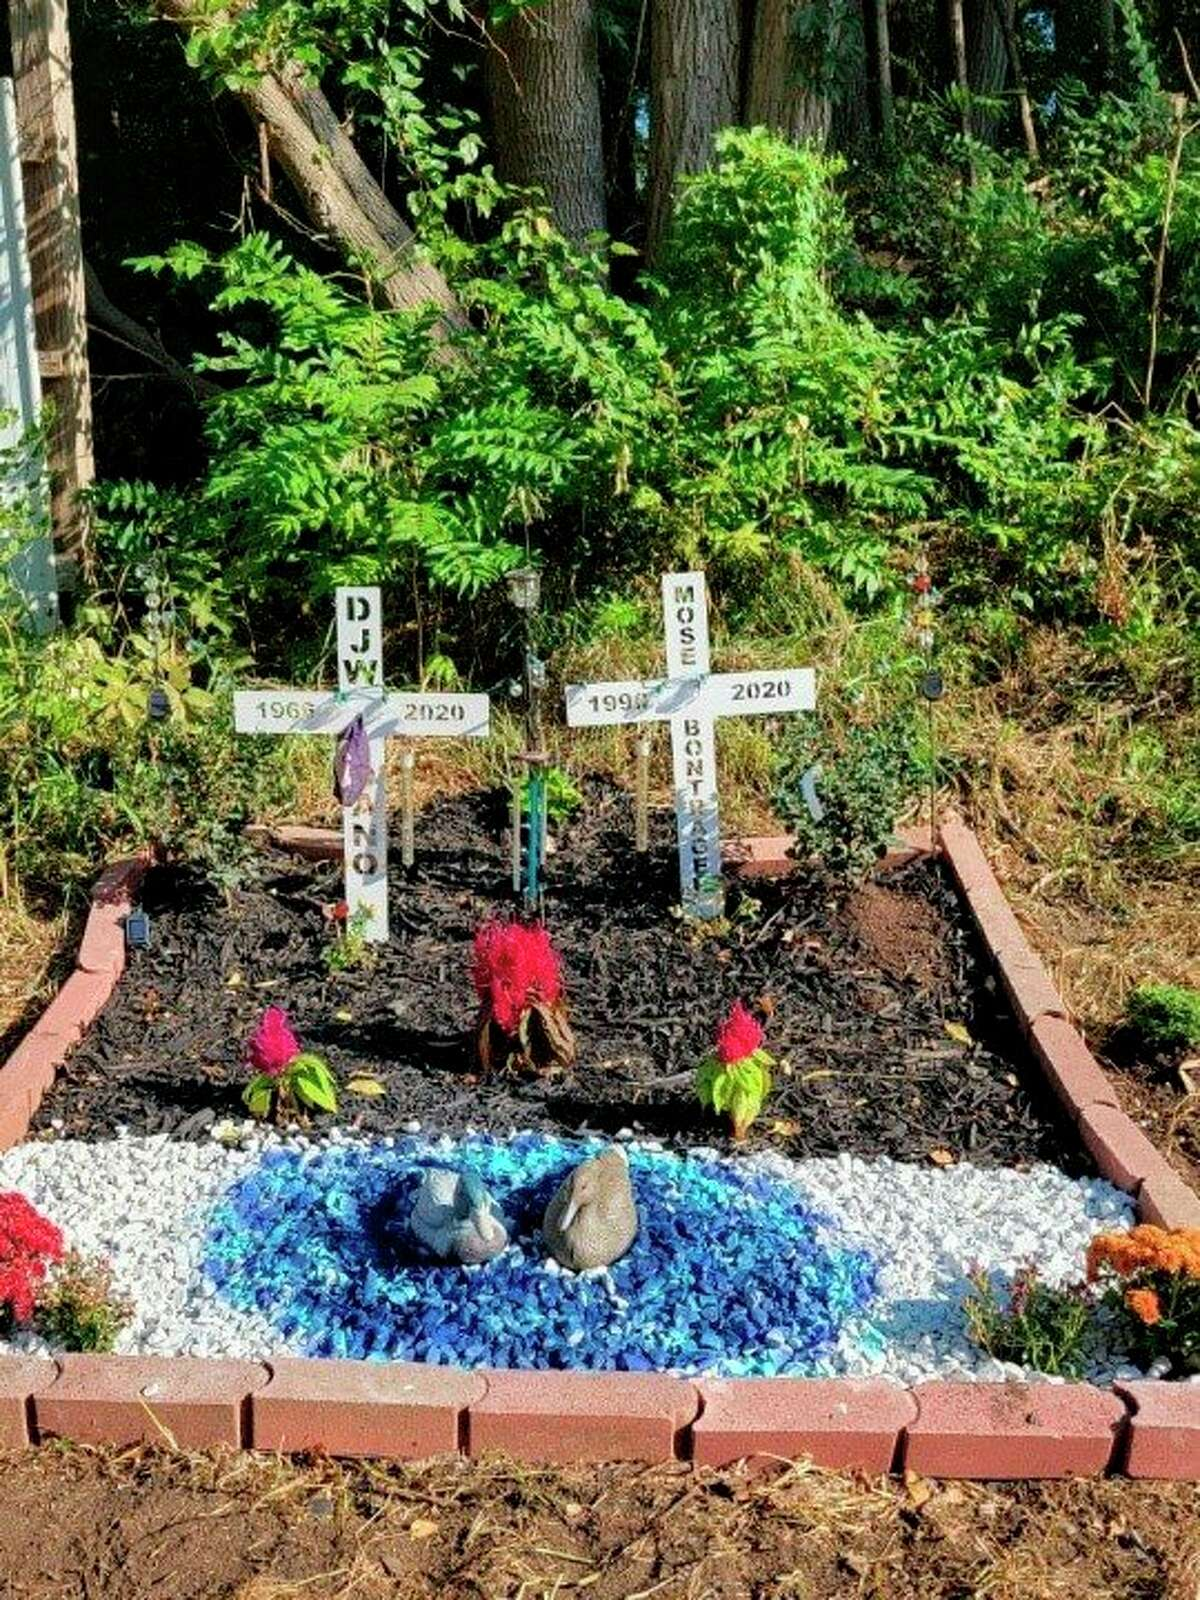 Memorial flowers planted for Dan and Mose by their families. (Courtesy photo)